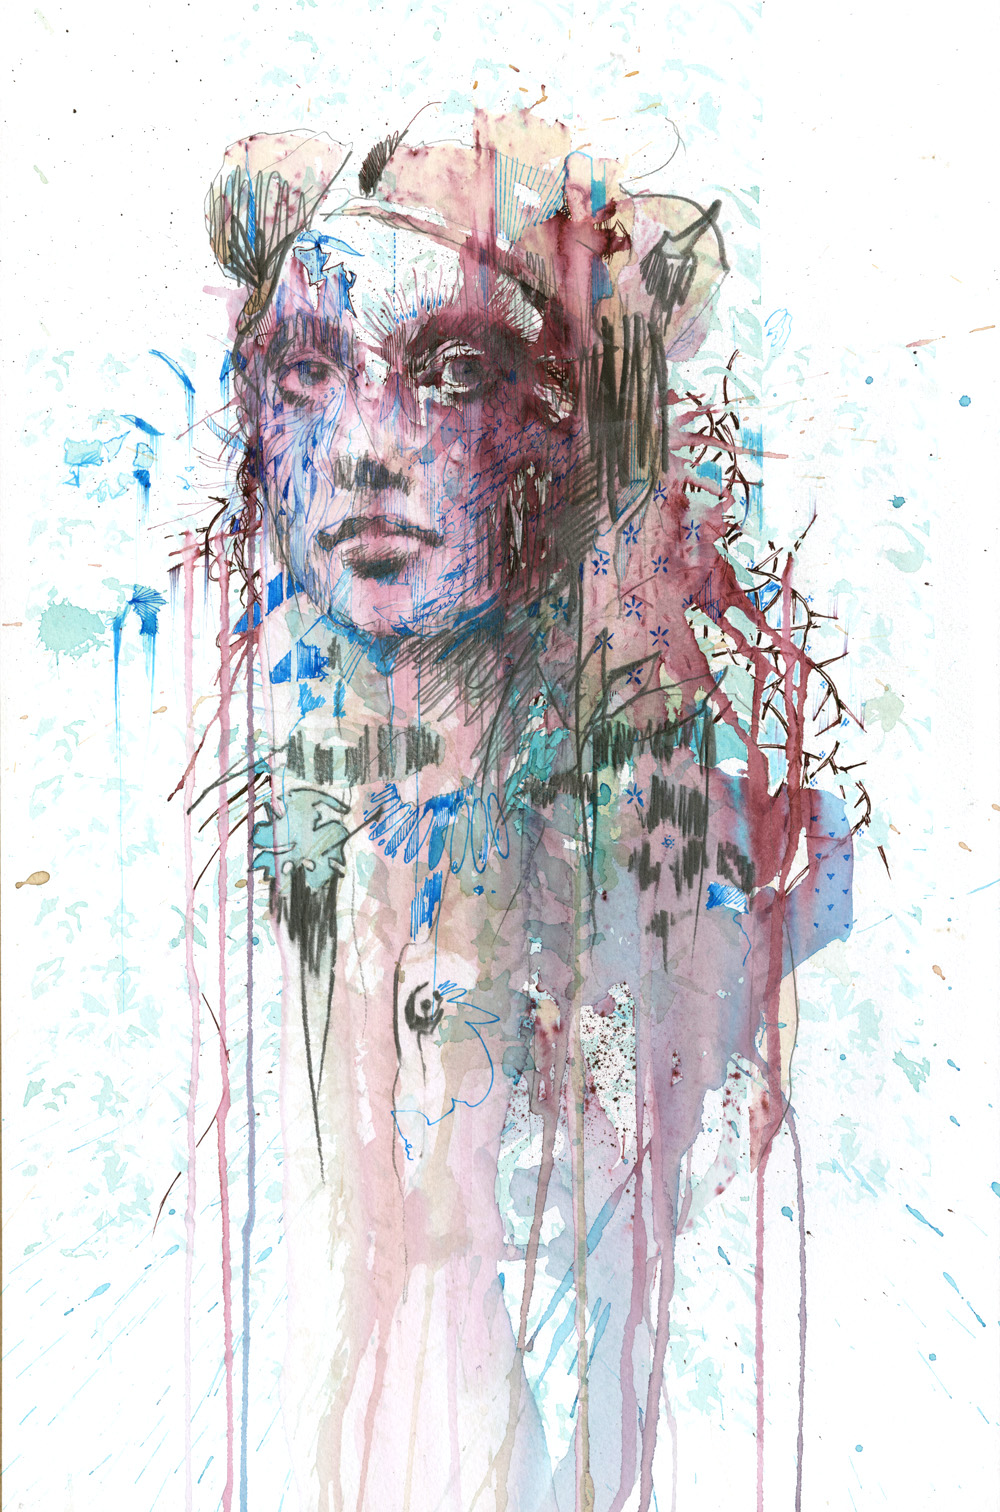 Obstructed by Carne Griffiths